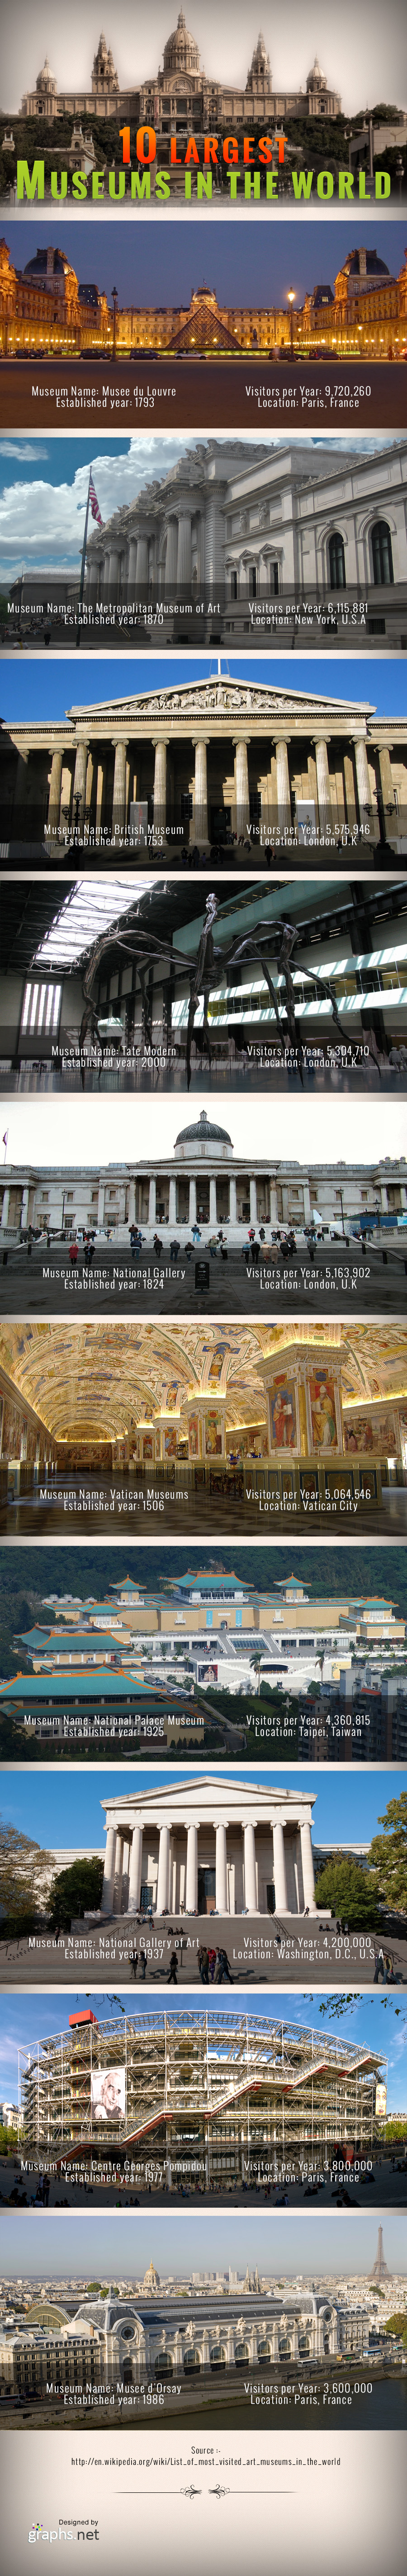 Worlds 10 Largest Museums